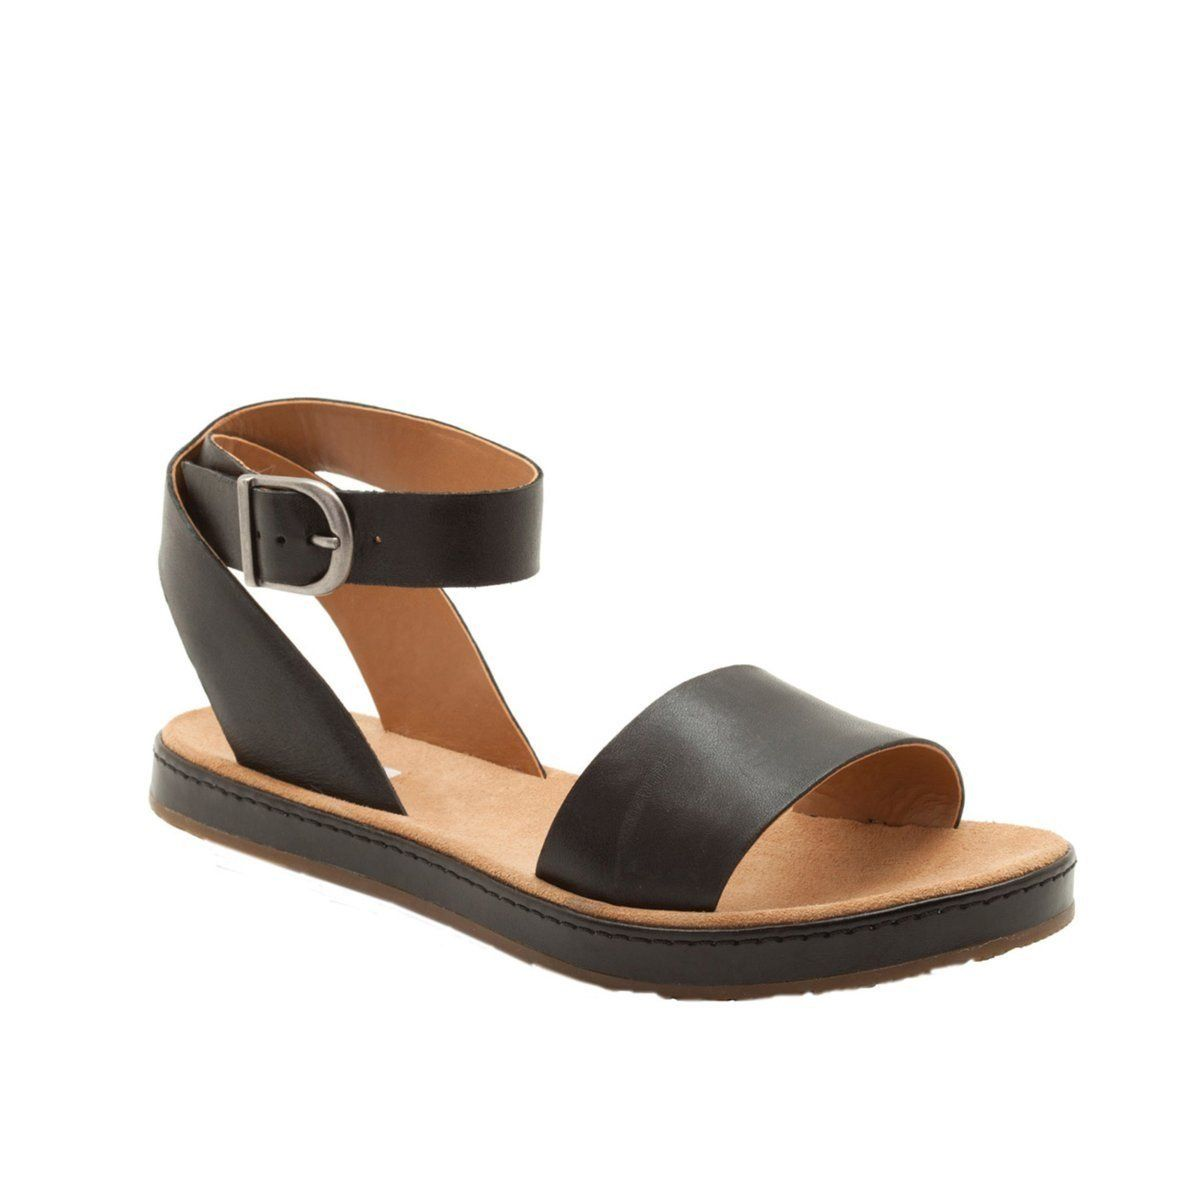 : Clarks Womens Romantic Moon Leather Sandals